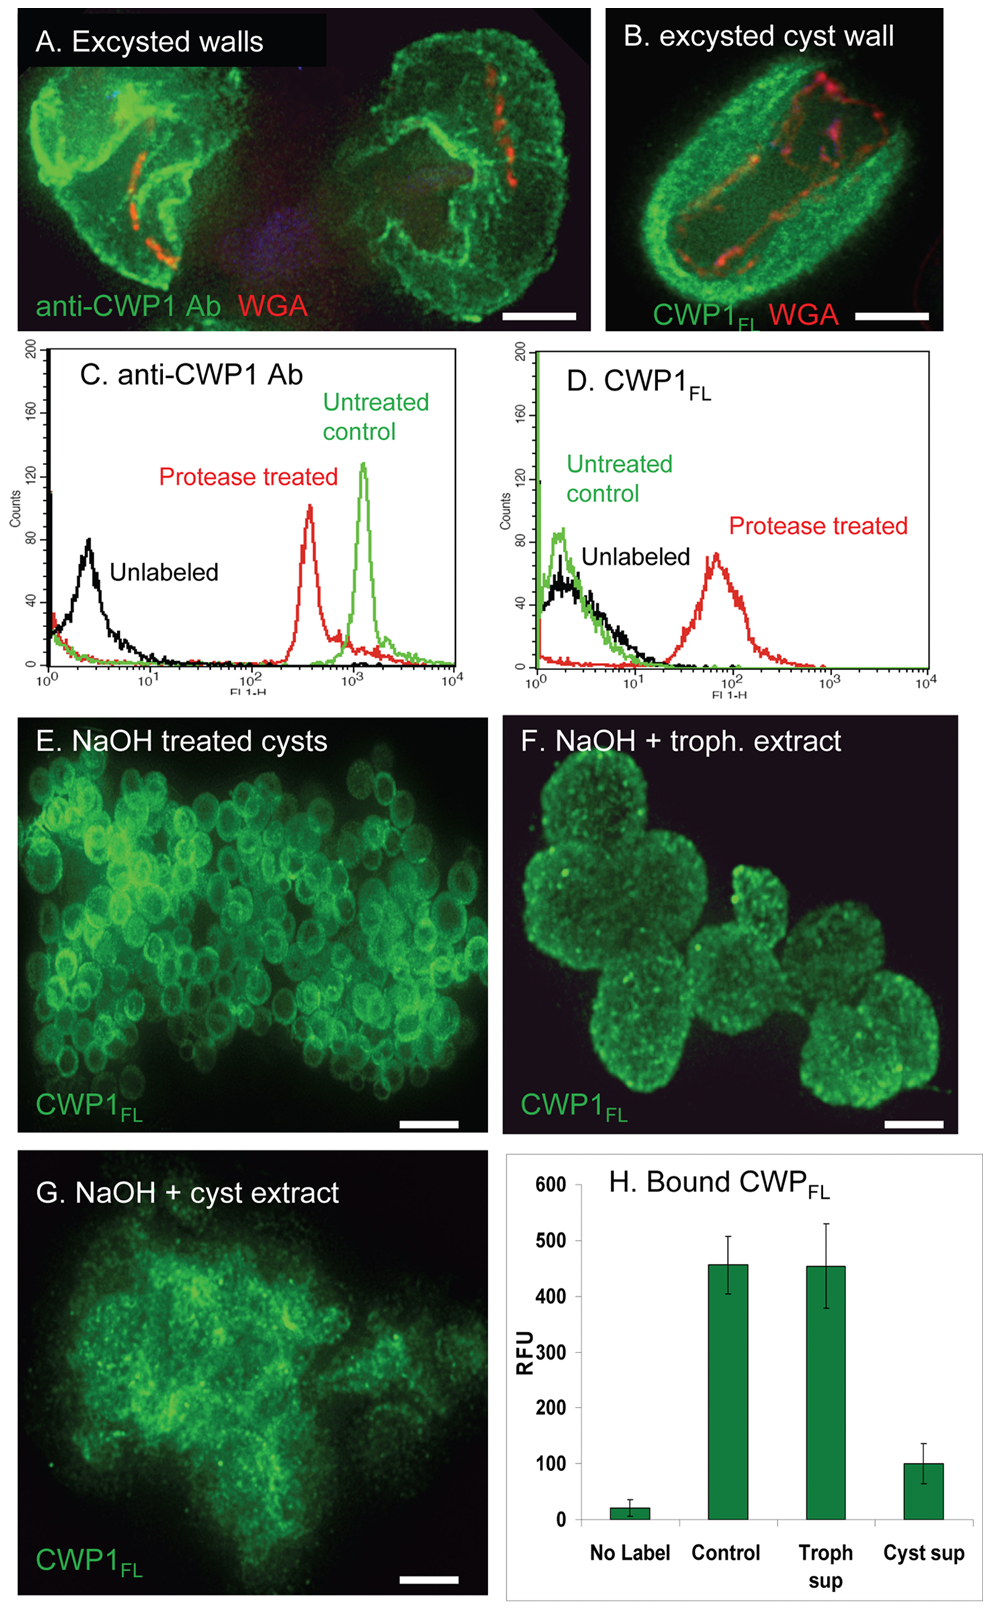 Evidence for the roles of proteases and glycohydrolases in disruption of <i>Giardia</i> cyst walls during excystation.